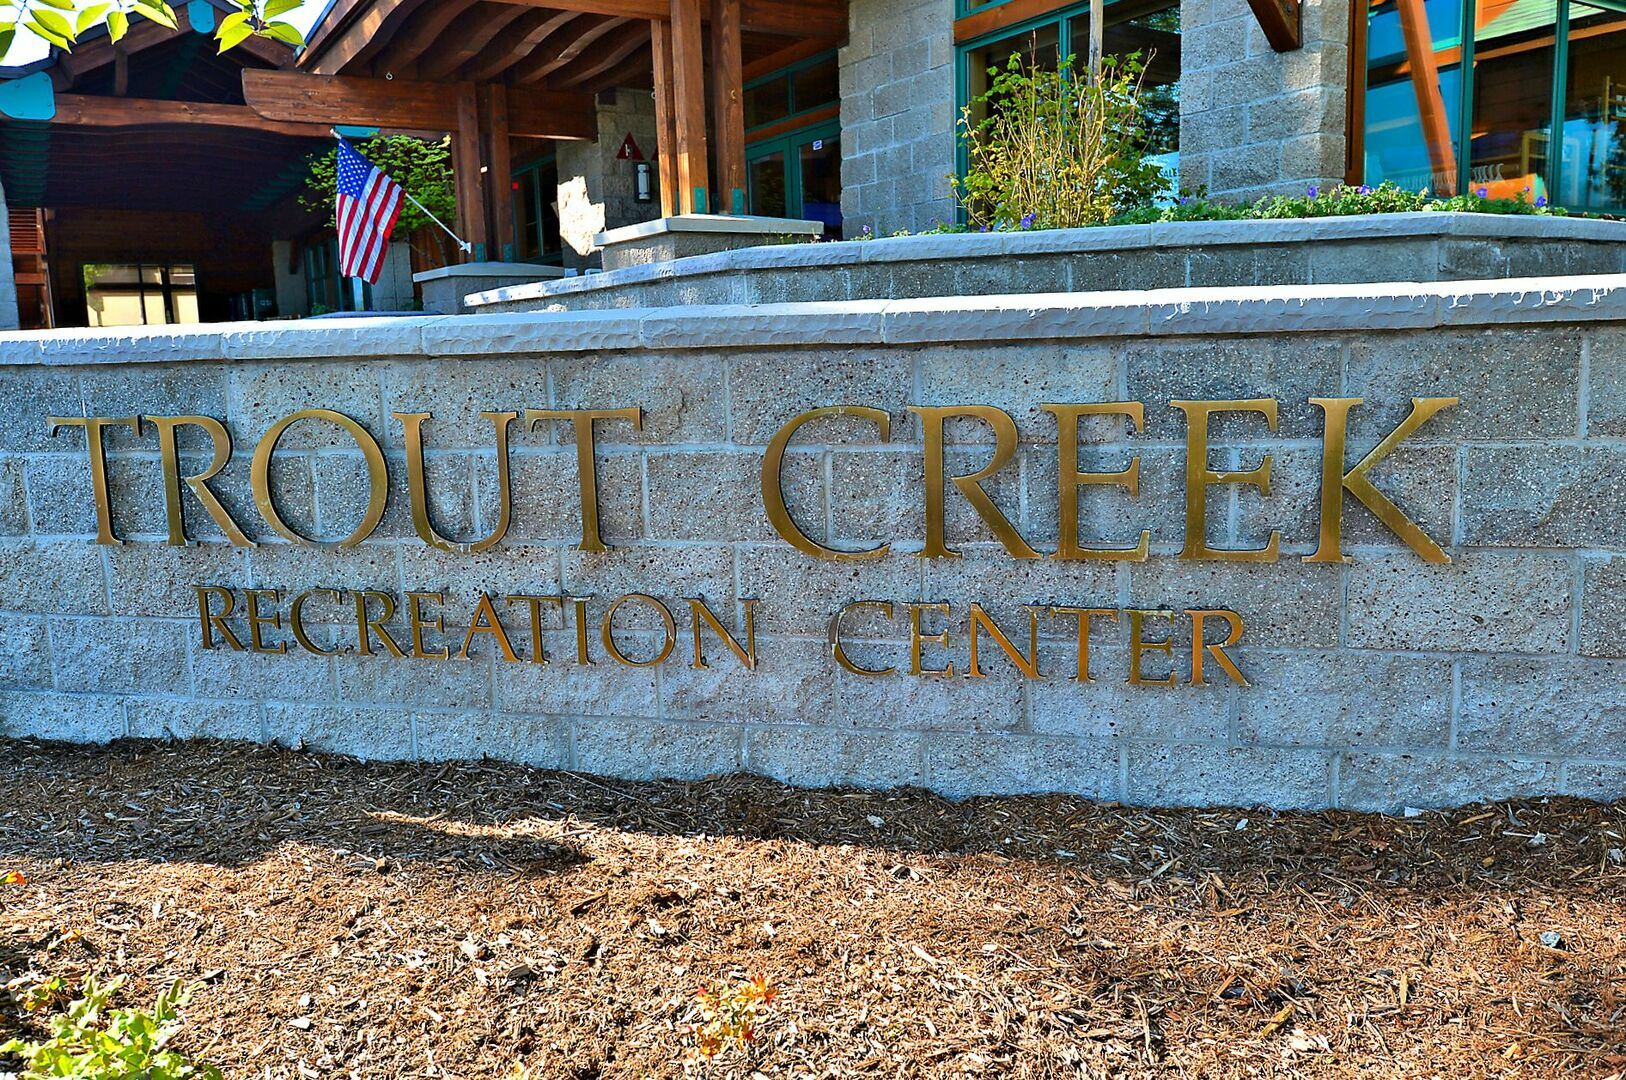 The Trout Creek Recreation Center